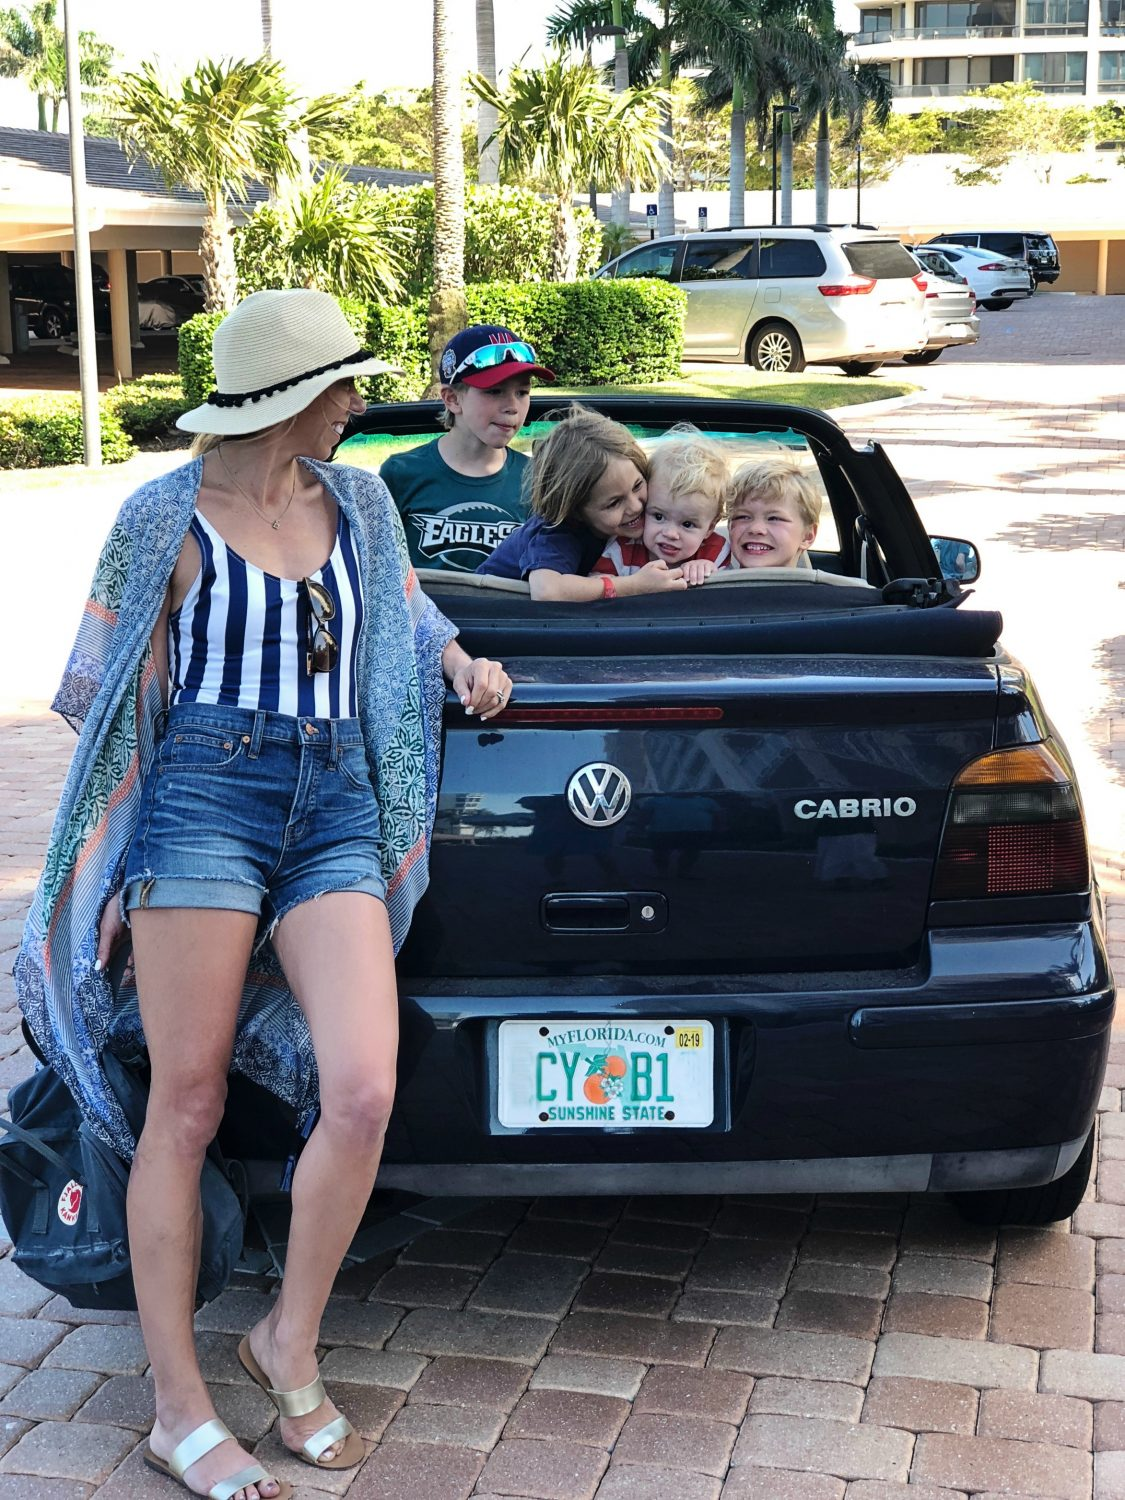 The motherchic wearing solid & striped bathing suit